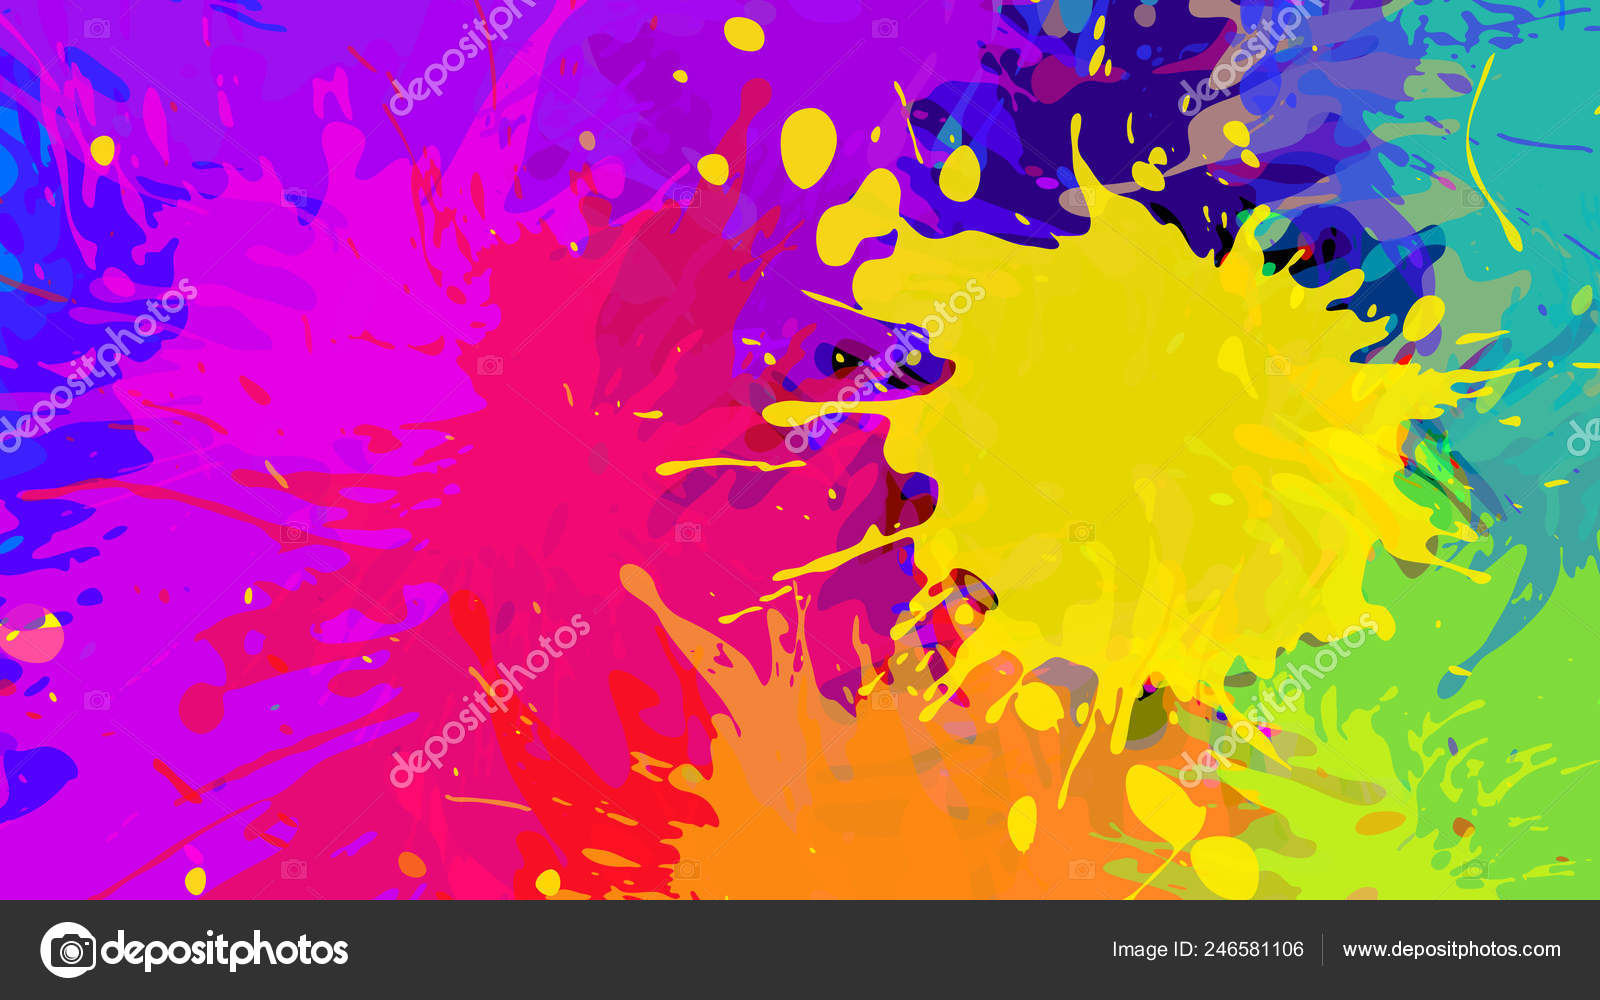 Paint splash wallpaper hd | Wide Format Abstract Colorful